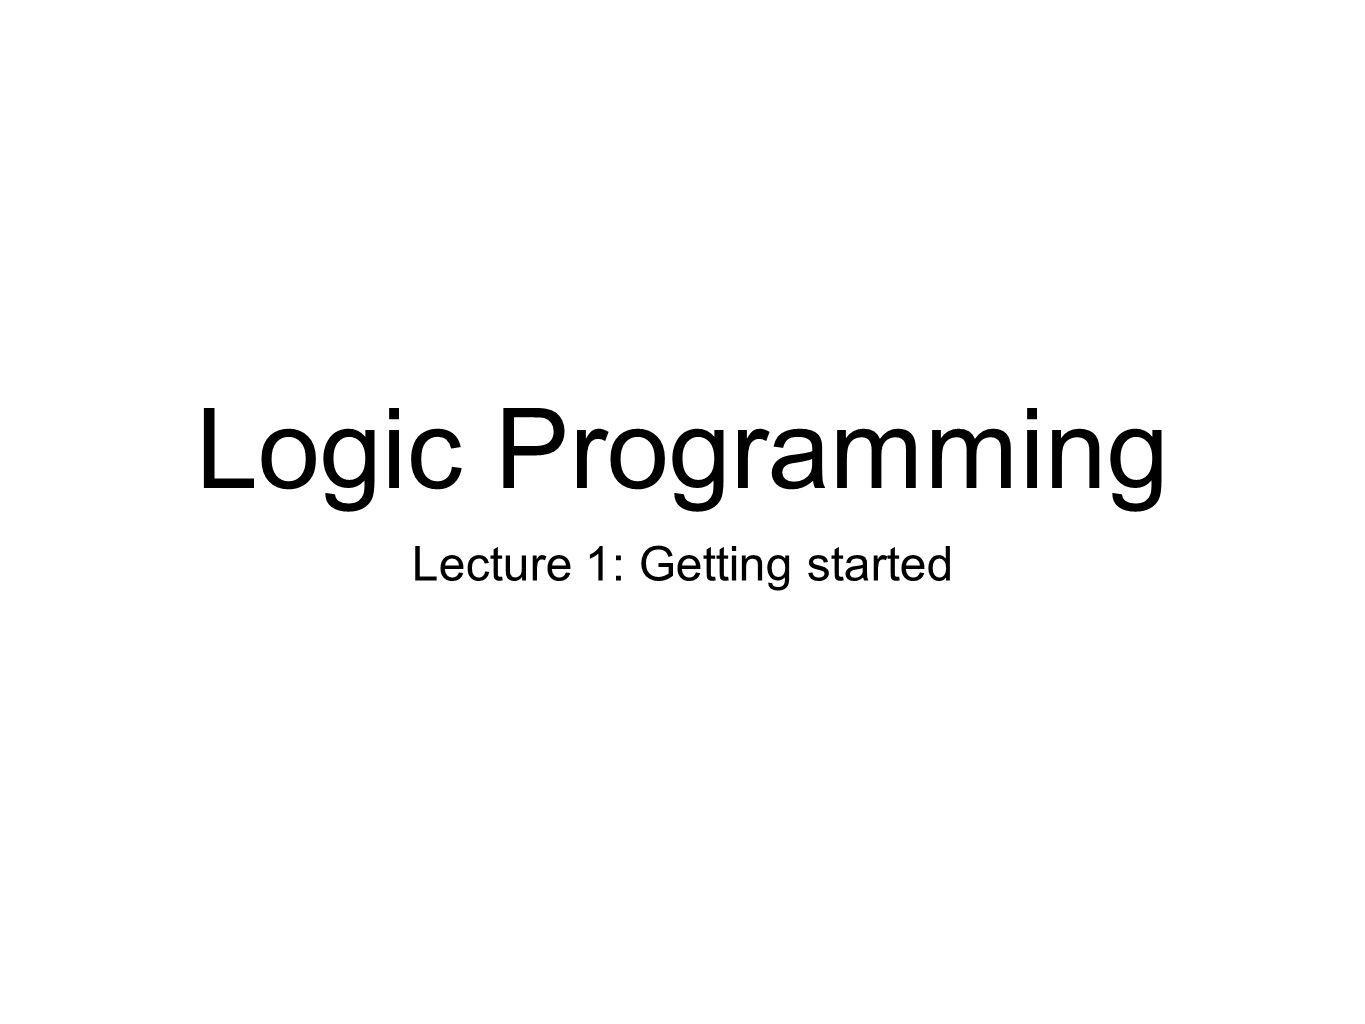 Logic Programming Lecture 1: Getting started